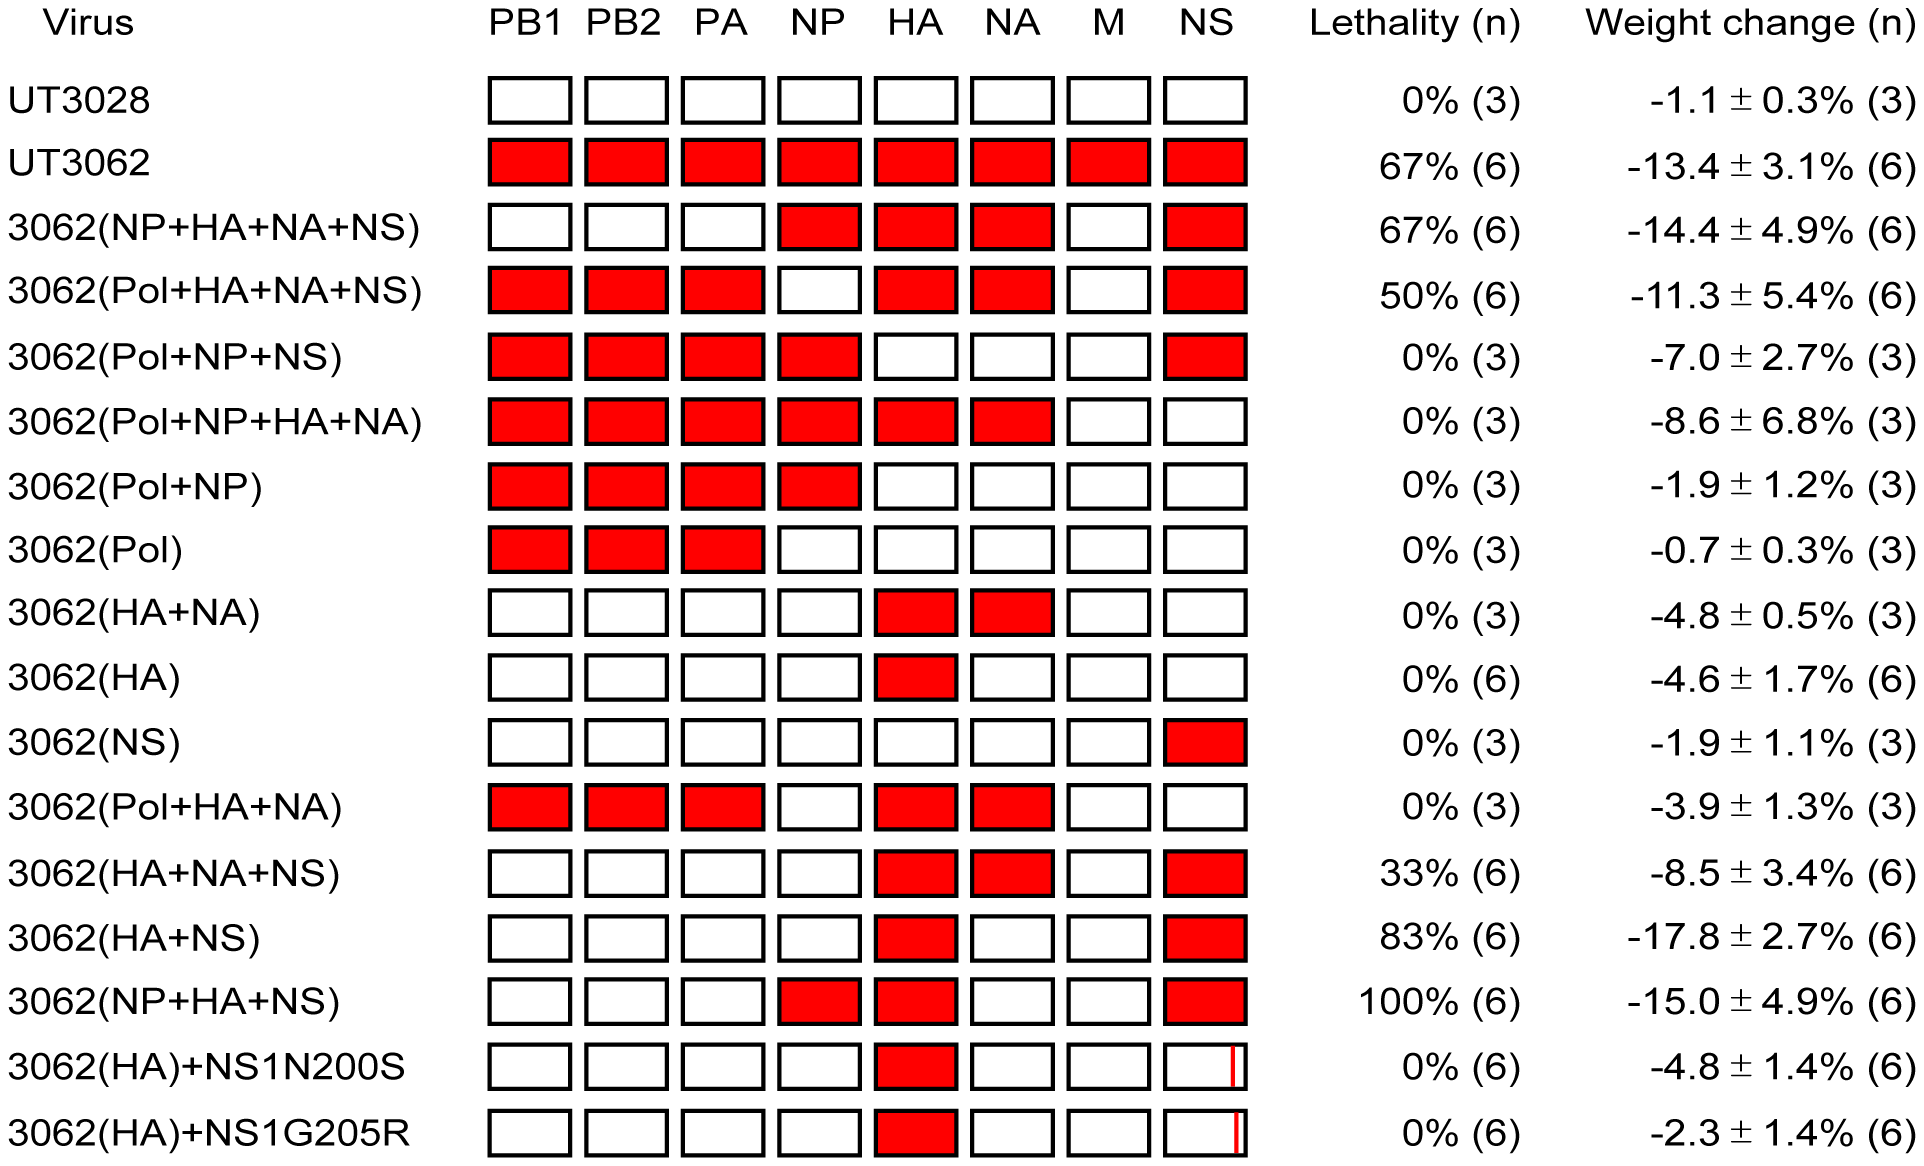 The HA and NS genes contribute to virulence in ferrets.